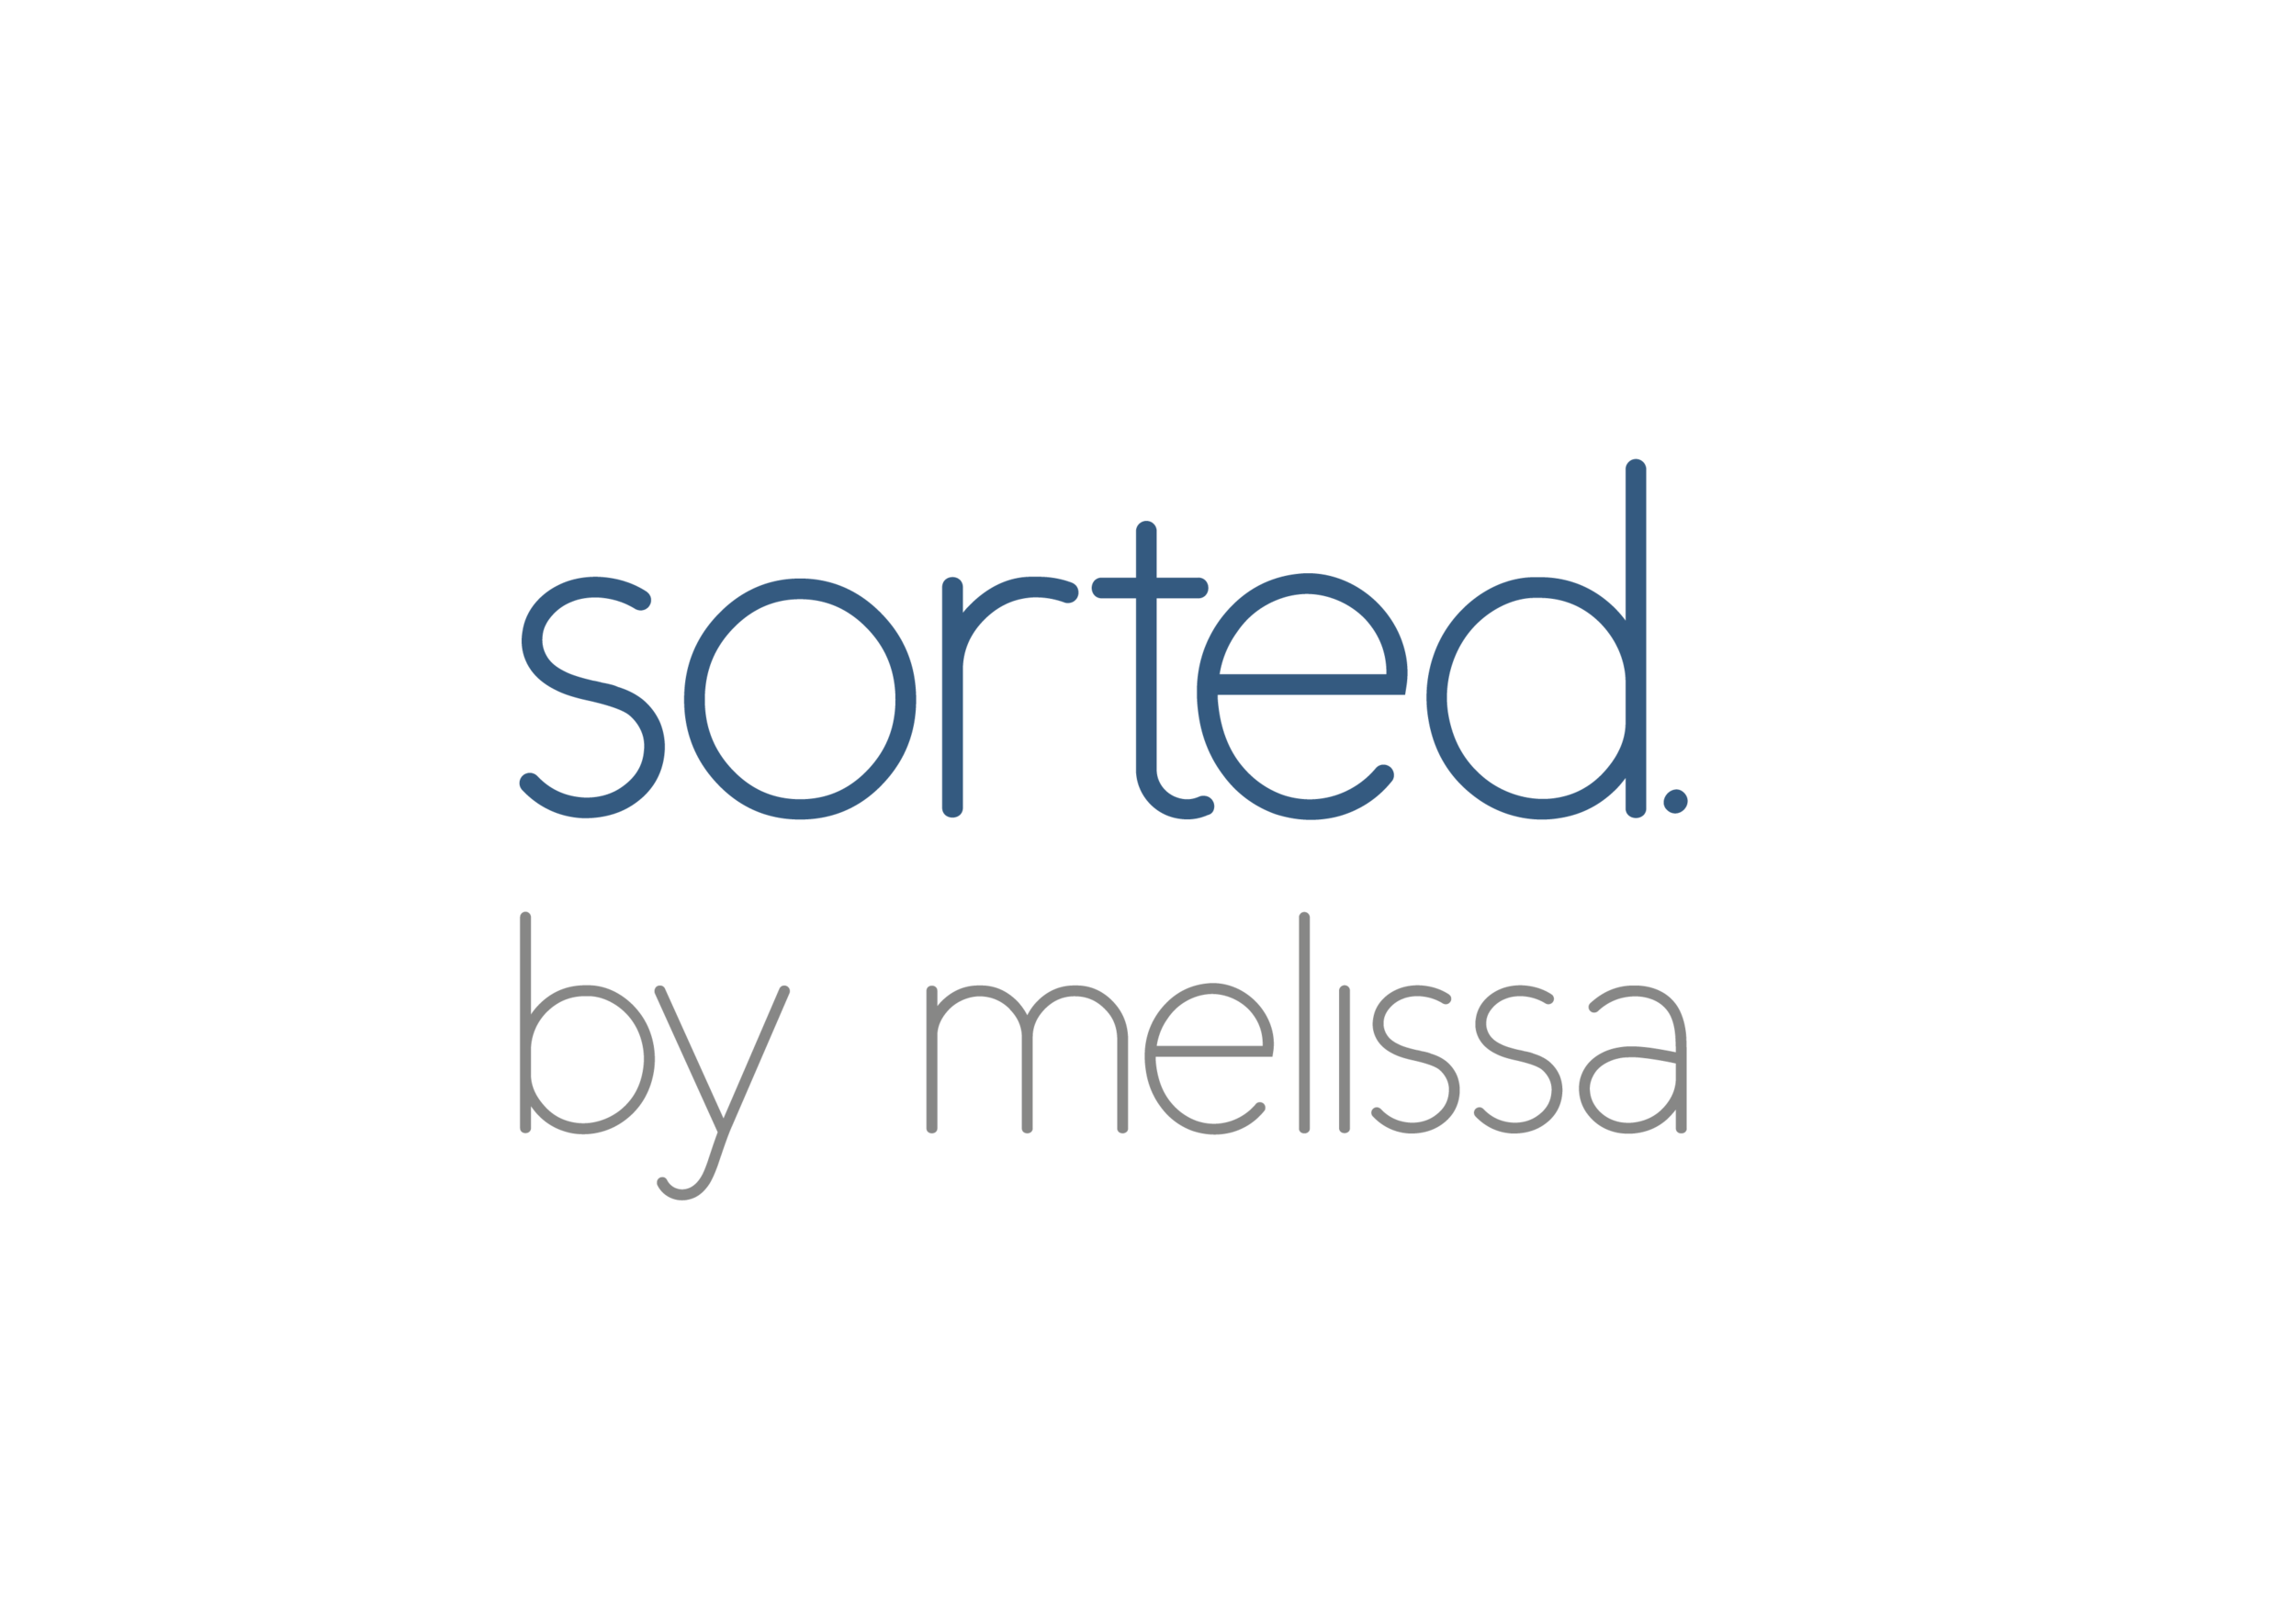 Sorted logo High Resolution PNG-01.png